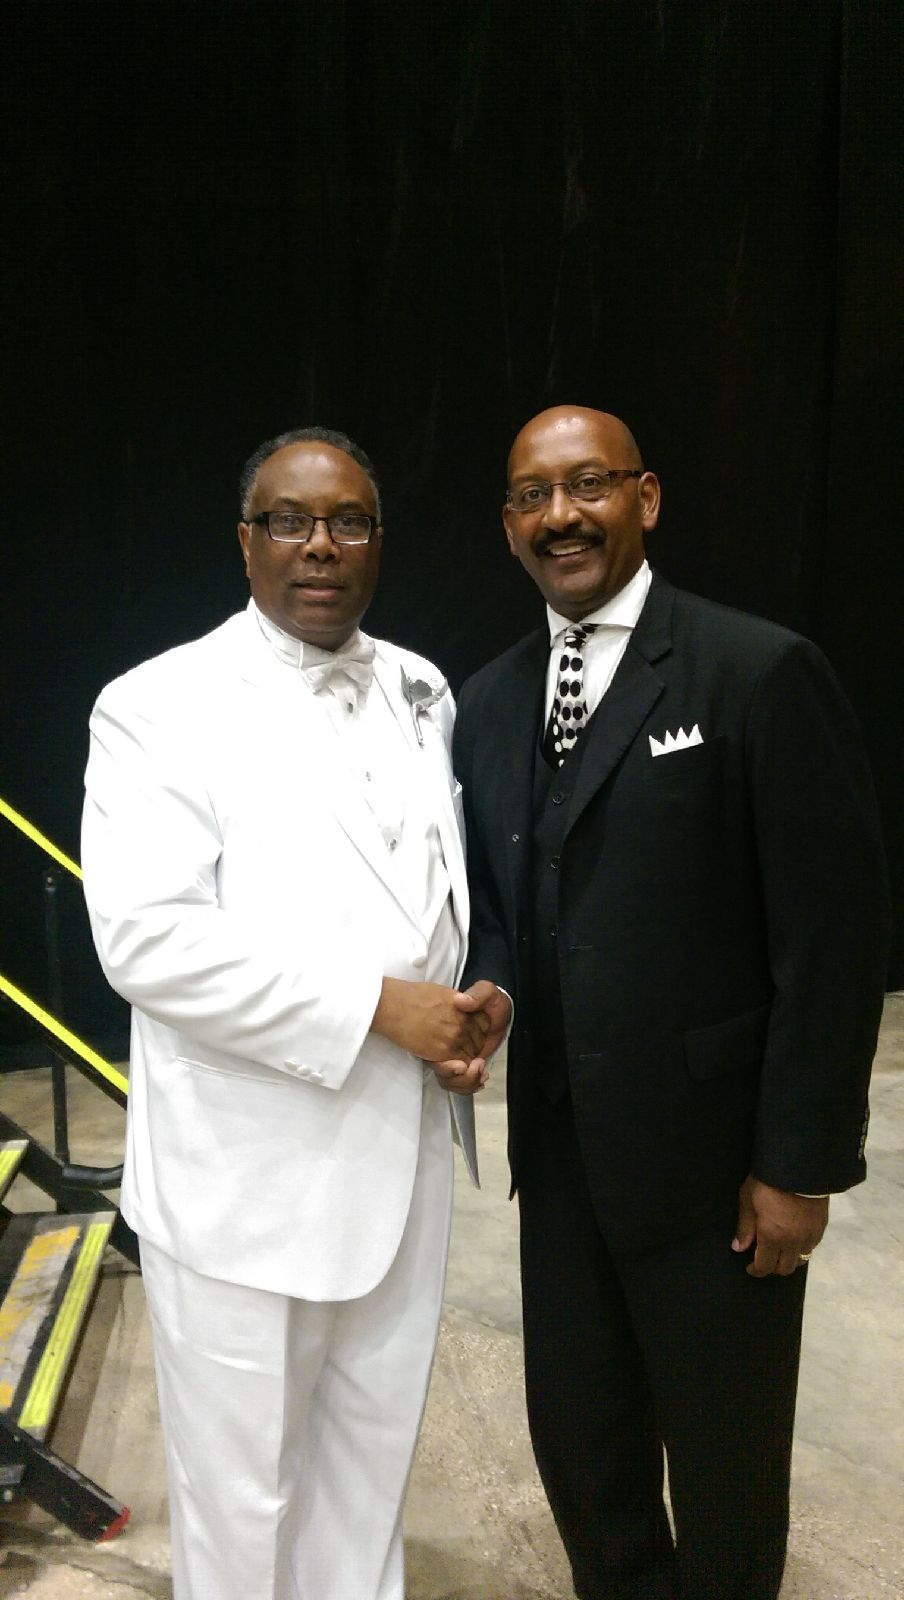 Pastor Alexander with the President of the National Baptist Convention of America International, Inc., Dr. Samuel C. Tolbert Jr.